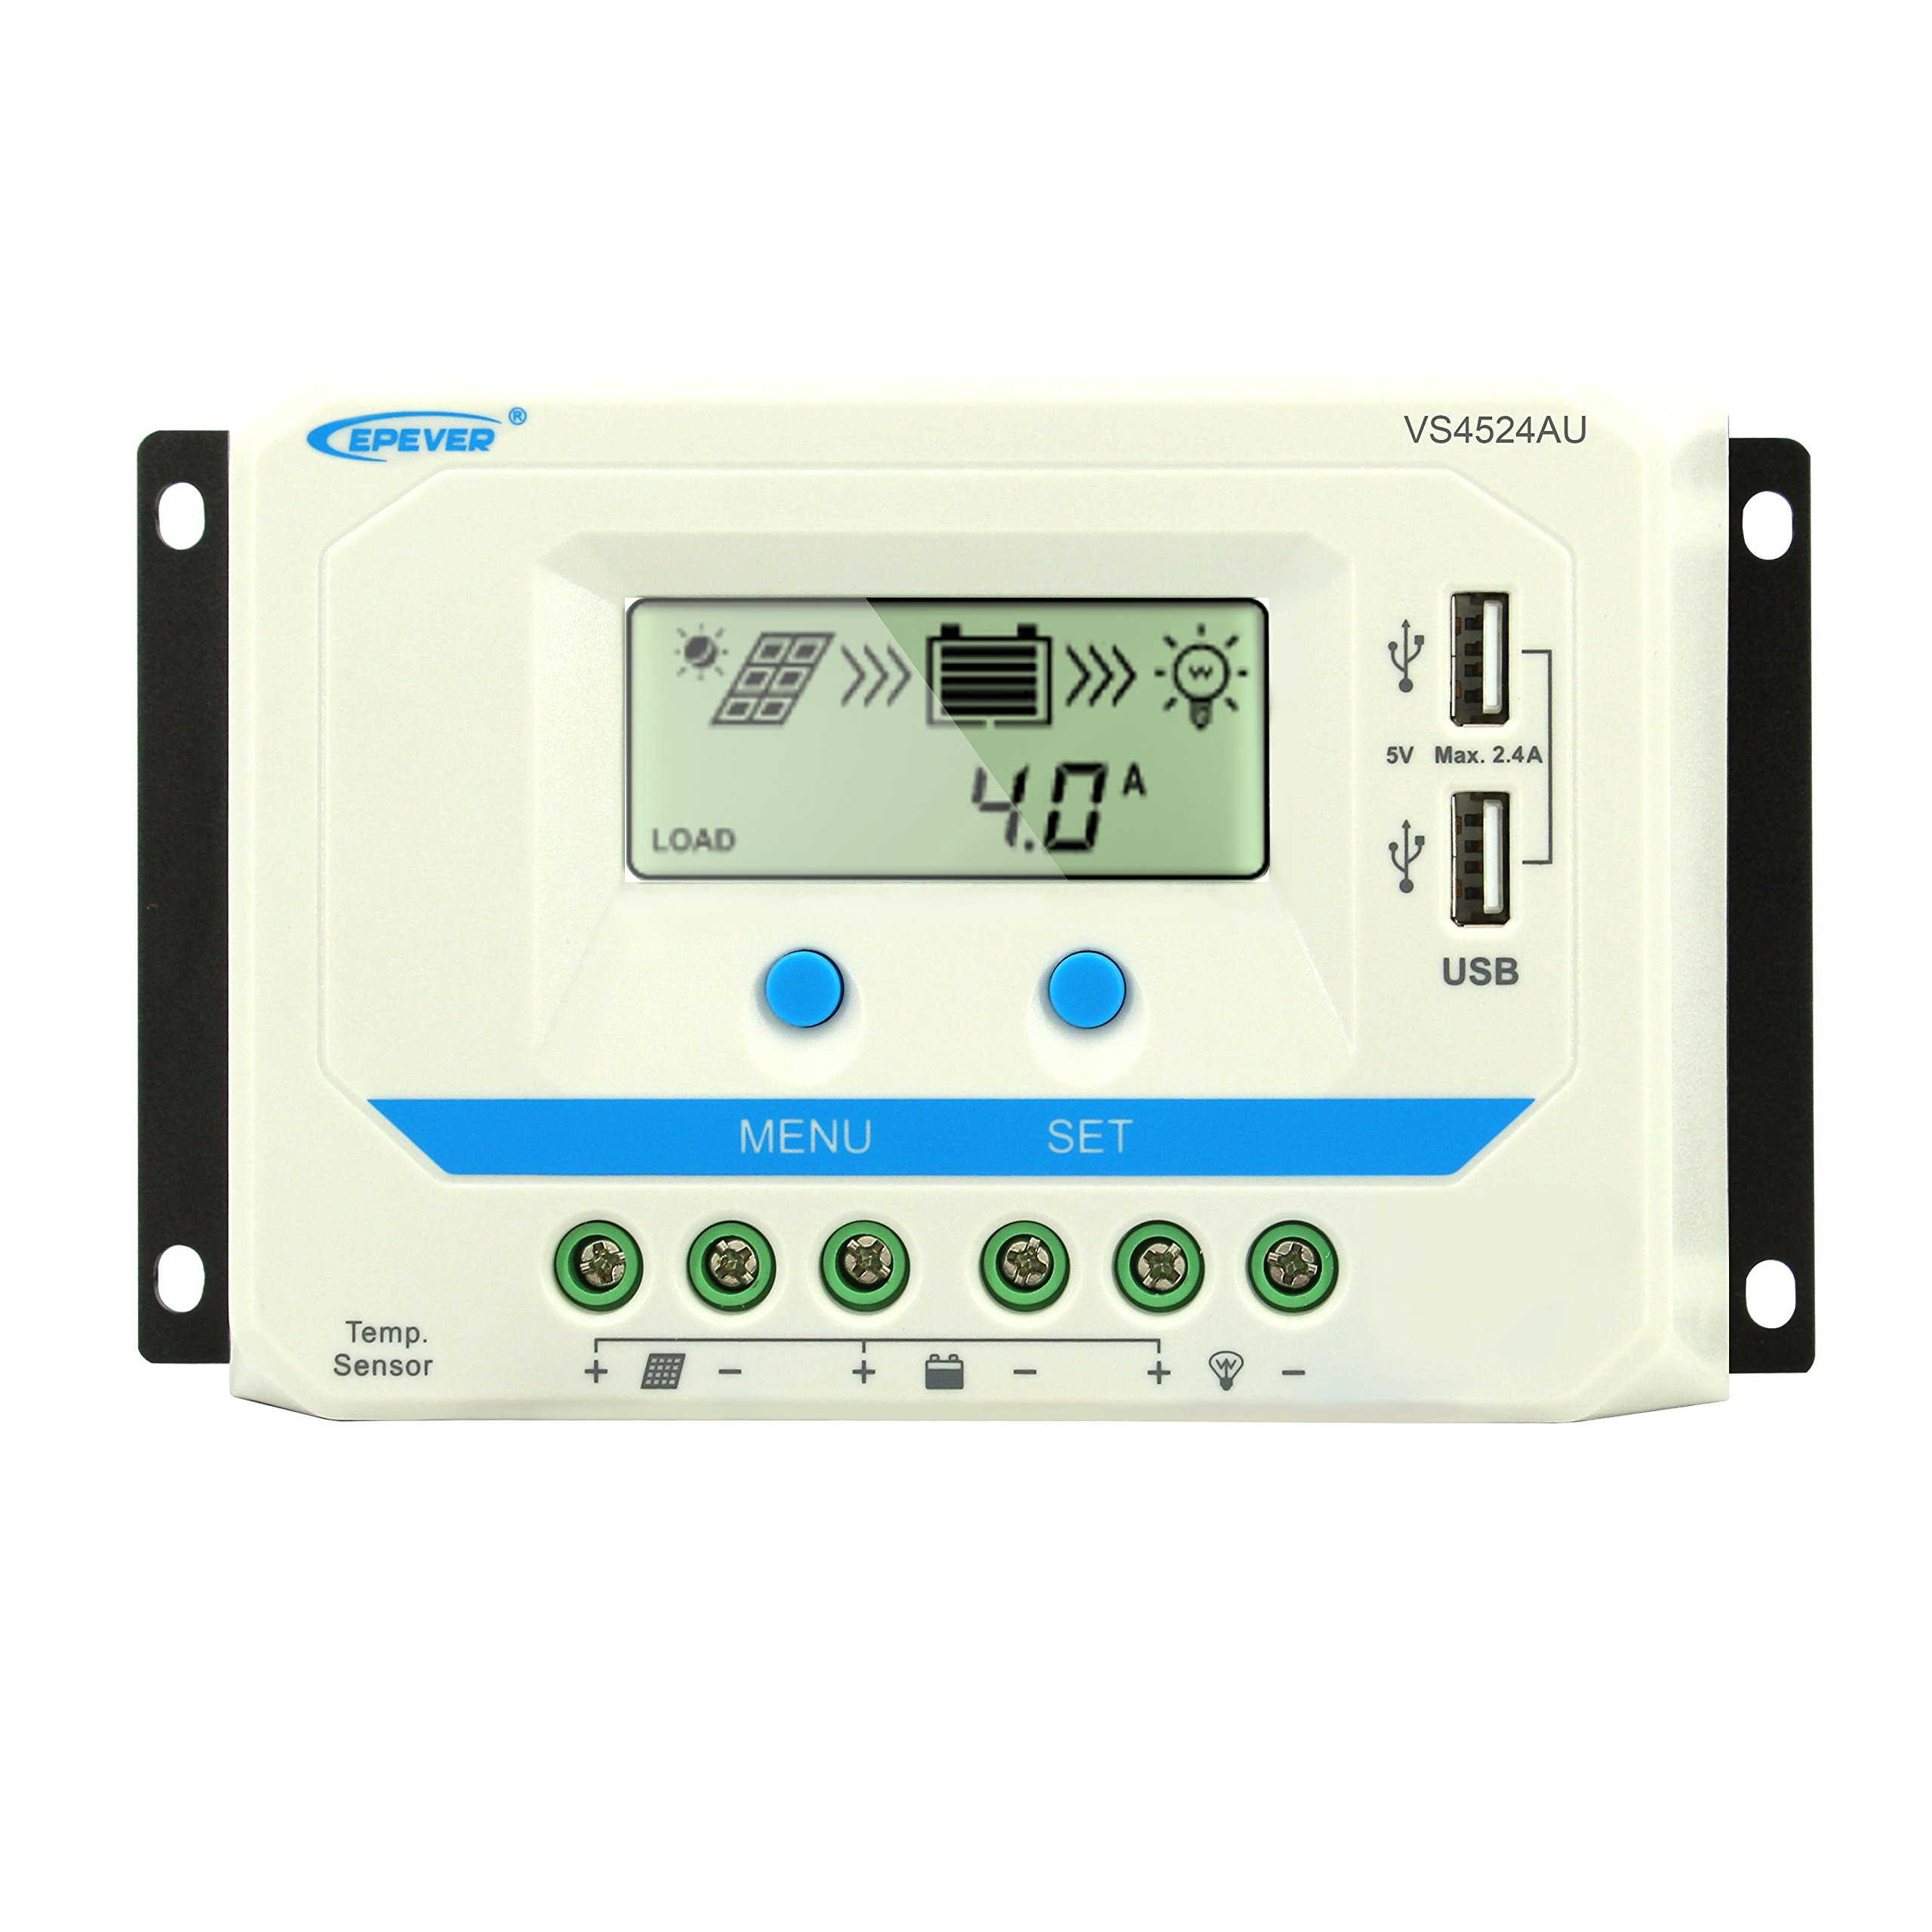 EPEVER 45A Solar Charge Controller 12V/24V Auto, 45 amp Solar Panel Battery Charge Regulator with LCD Display Dual USB Output for Lead Acid (AGM Sealed Gel Flooded) Battery